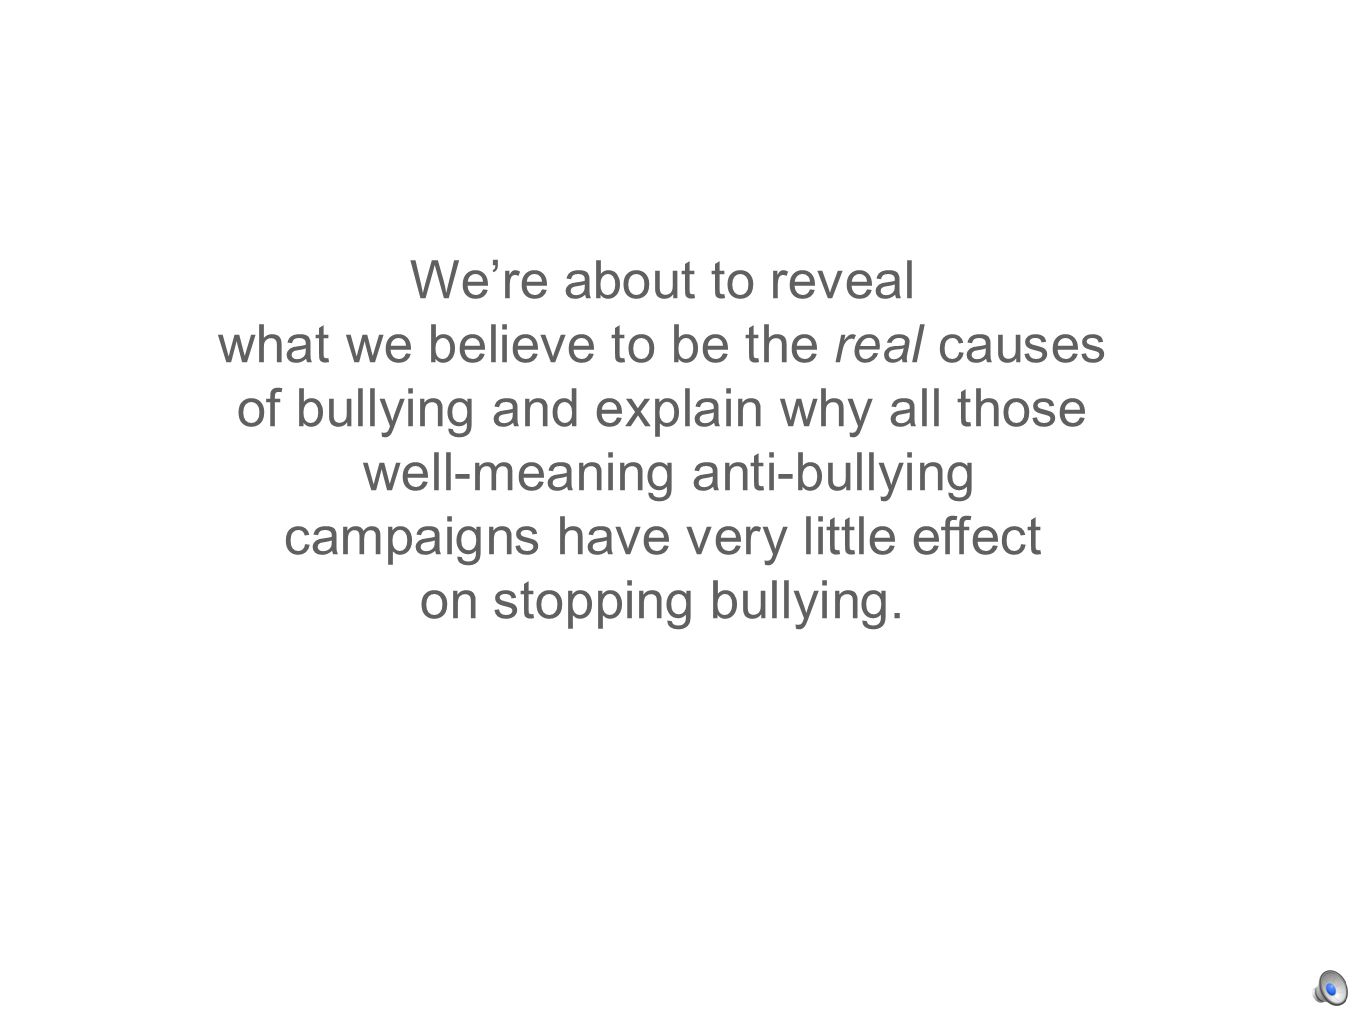 Were about to reveal what we believe to be the real causes of bullying and explain why all those well-meaning anti-bullying campaigns have very little effect on stopping bullying.